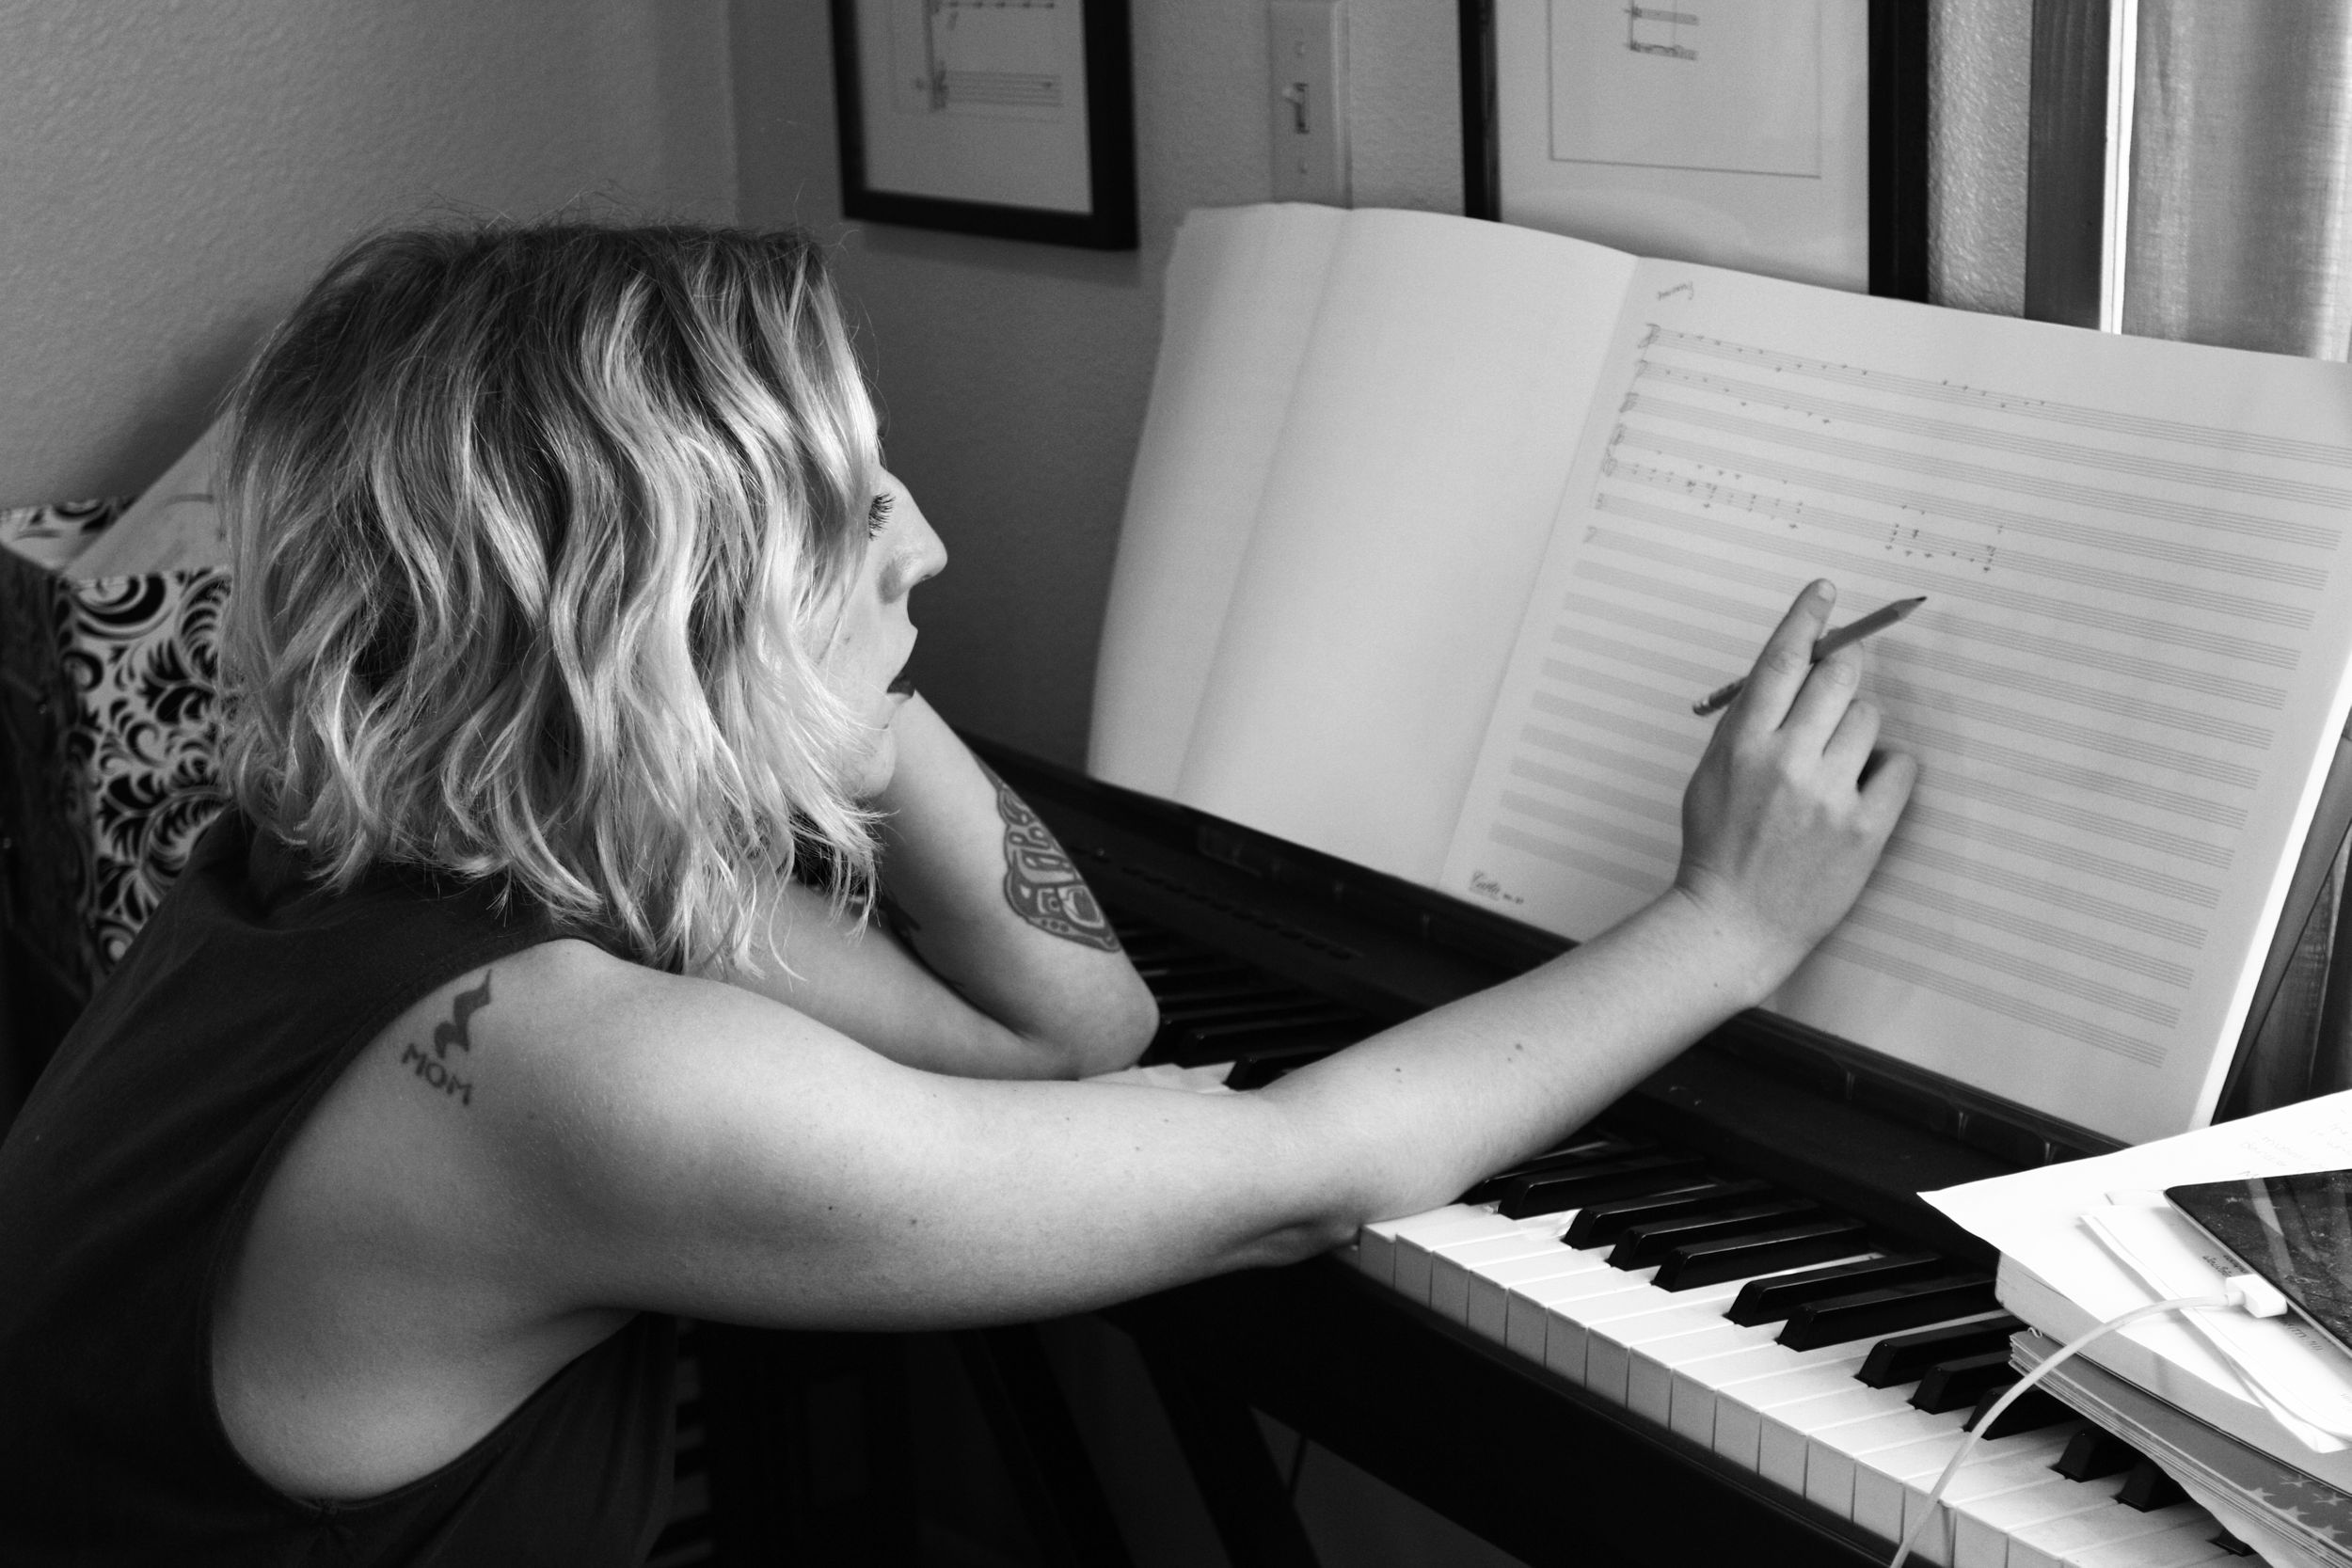 Composer Kaley Lane Eaton at her piano, working on a new project.